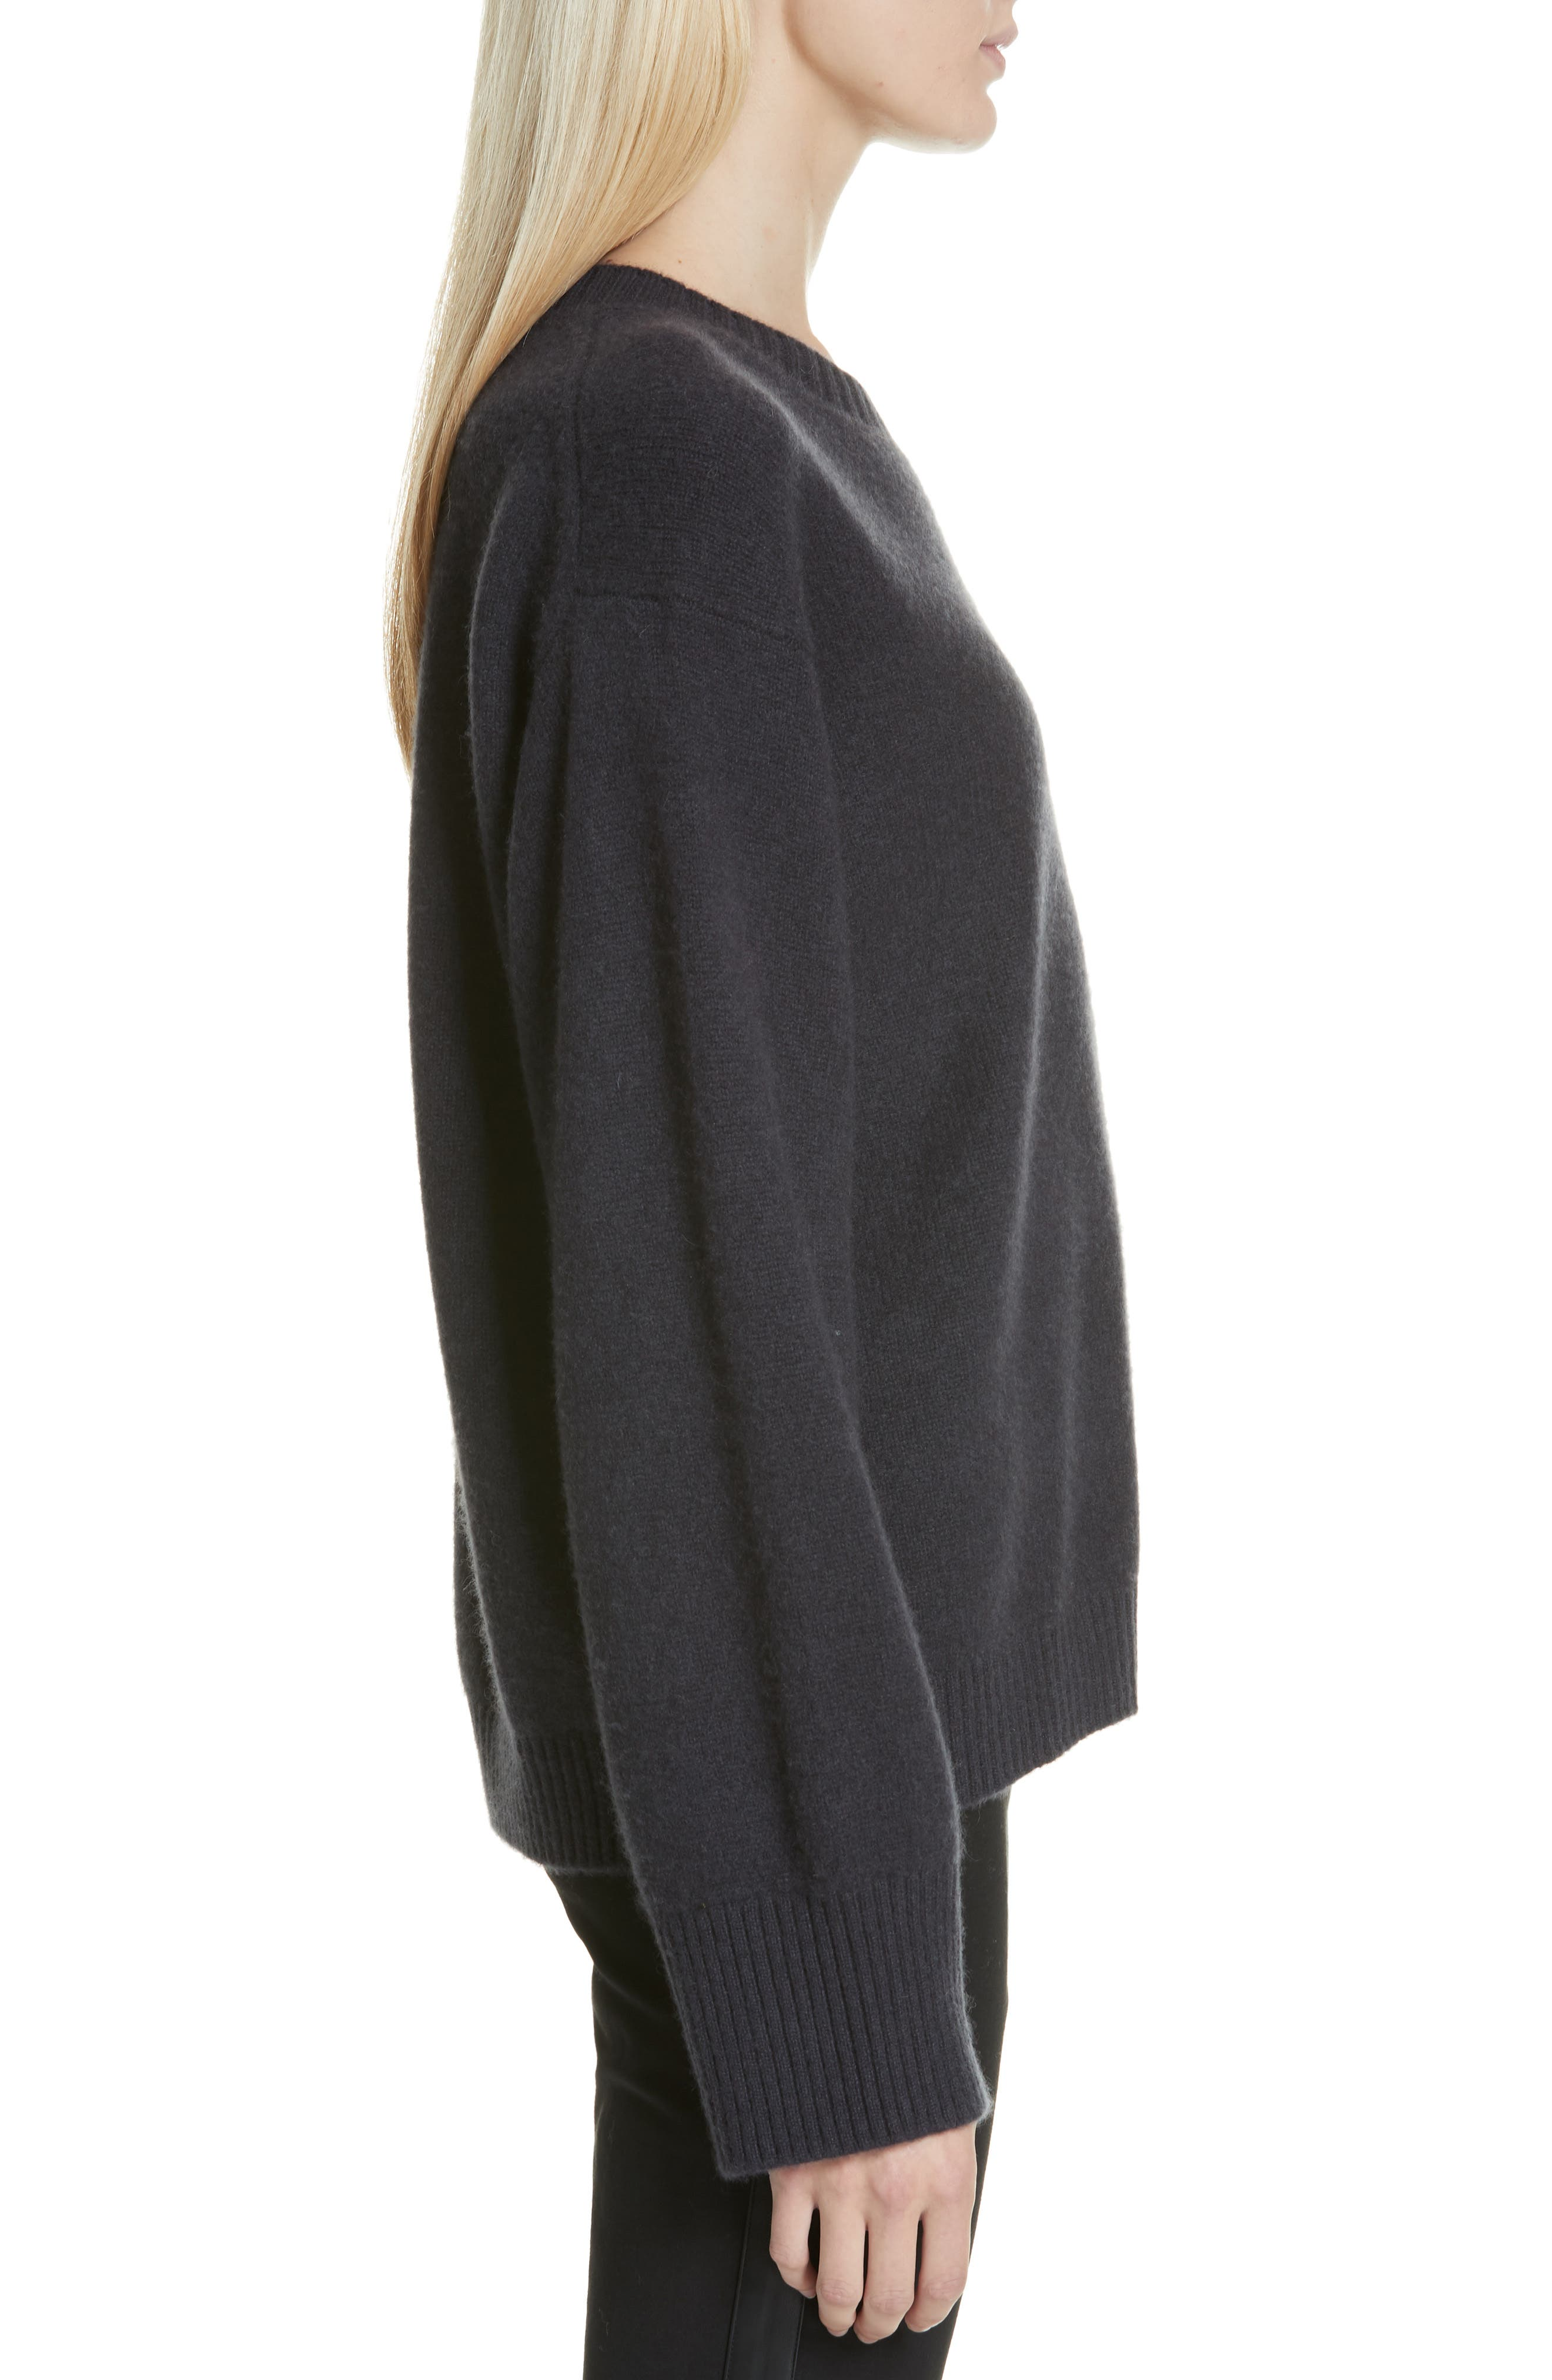 VINCE, Boxy Cashmere Sweater, Alternate thumbnail 3, color, OBSIDIAN